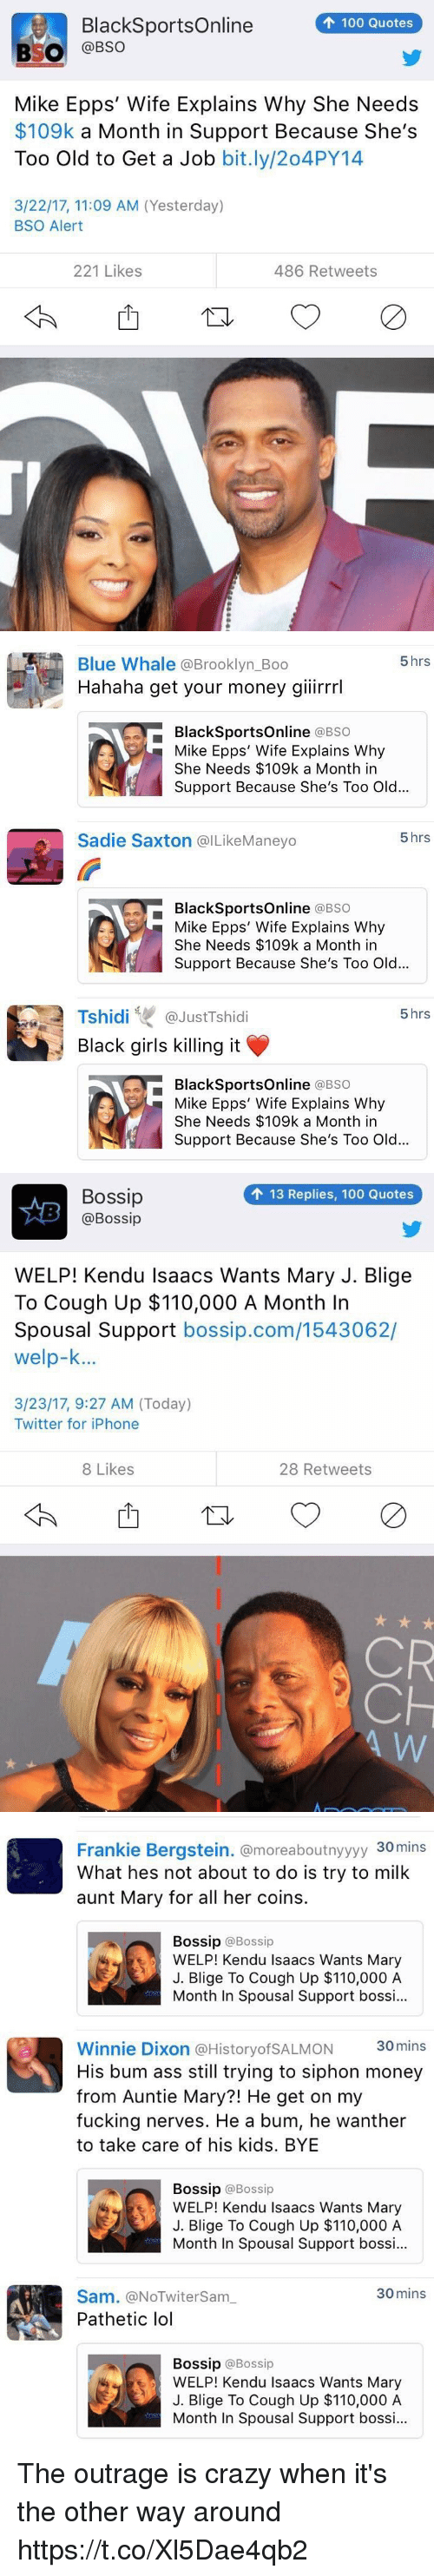 Anaconda, Andrew Bogut, and Ass: 100 Quotes  BlackSportsOnline  BSO  @BSO  Mike Epps' Wife Explains Why She Needs  $109k a Month in Support Because She's  Too Old to Get a Job  bit.ly/204PY14  3/22/17, 11:09 AM (Yesterday)  BSO Alert  221 Likes  486 Retweets   5 hrs  Blue Whale Brooklyn Boo  Hahaha get your money giiirrrl  BlackSportsOnline  (a BSO  Mike Epps' Wife Explains Why  She Needs $109k a Month in  Support Because She's Too Old...  5 hrs  Sadie Saxton @ILikeManeyo  BlackSportsOnline  (a BSO  Mike Epps' Wife Explains Why  She Needs $109k a Month in  Support Because She's Too Old...  Tshidi  GJustTshidi  5 hrs  Black girls killing it  BlackSportsOnline  (a BSO  Mike Epps' Wife Explains Why  She Needs $109k a Month in  Support Because She's Too Old...   Bossip  13 Replies, 100 Quotes  @Bossip  WELP! Kendu Isaacs Wants Mary J. Blige  To Cough Up $110,000 A Month In  Spousal Support  bossip.com/1543062/  welp-k...  3/23/17, 9:27 AM (Today)  Twitter for iPhone  8 Likes  28 Retweets  CR   Frankie Bergstein. @moreaboutnyyyy 30mins  What hes not about to do is try to milk  aunt Mary for all her coins.  Bossip  @Bossip  WELP! Kendu Isaacs Wants Mary  J. Blige To Cough Up $110,000 A  Month In Spousal Support bossi...  Winnie Dixon a HistoryofSALMON 30mins  His bum ass still trying to siphon money  from Auntie Mary?! He get on my  fucking nerves. He a bum, he wanther  to take care of his kids. BYE  Bossip  @Bossip  WELP! Kendu Isaacs Wants Mary  J. Blige To cough up $110,000 A  Month In Spousal Support bossi...  30 mins  Sam. (aNOTwitersam  Pathetic lol  Bossip @Bossip  WELP! Kendu Isaacs Wants Mary  J. Blige To Cough Up $110,000 A  Month In Spousal Support bossi... The outrage is crazy when it's the other way around https://t.co/Xl5Dae4qb2